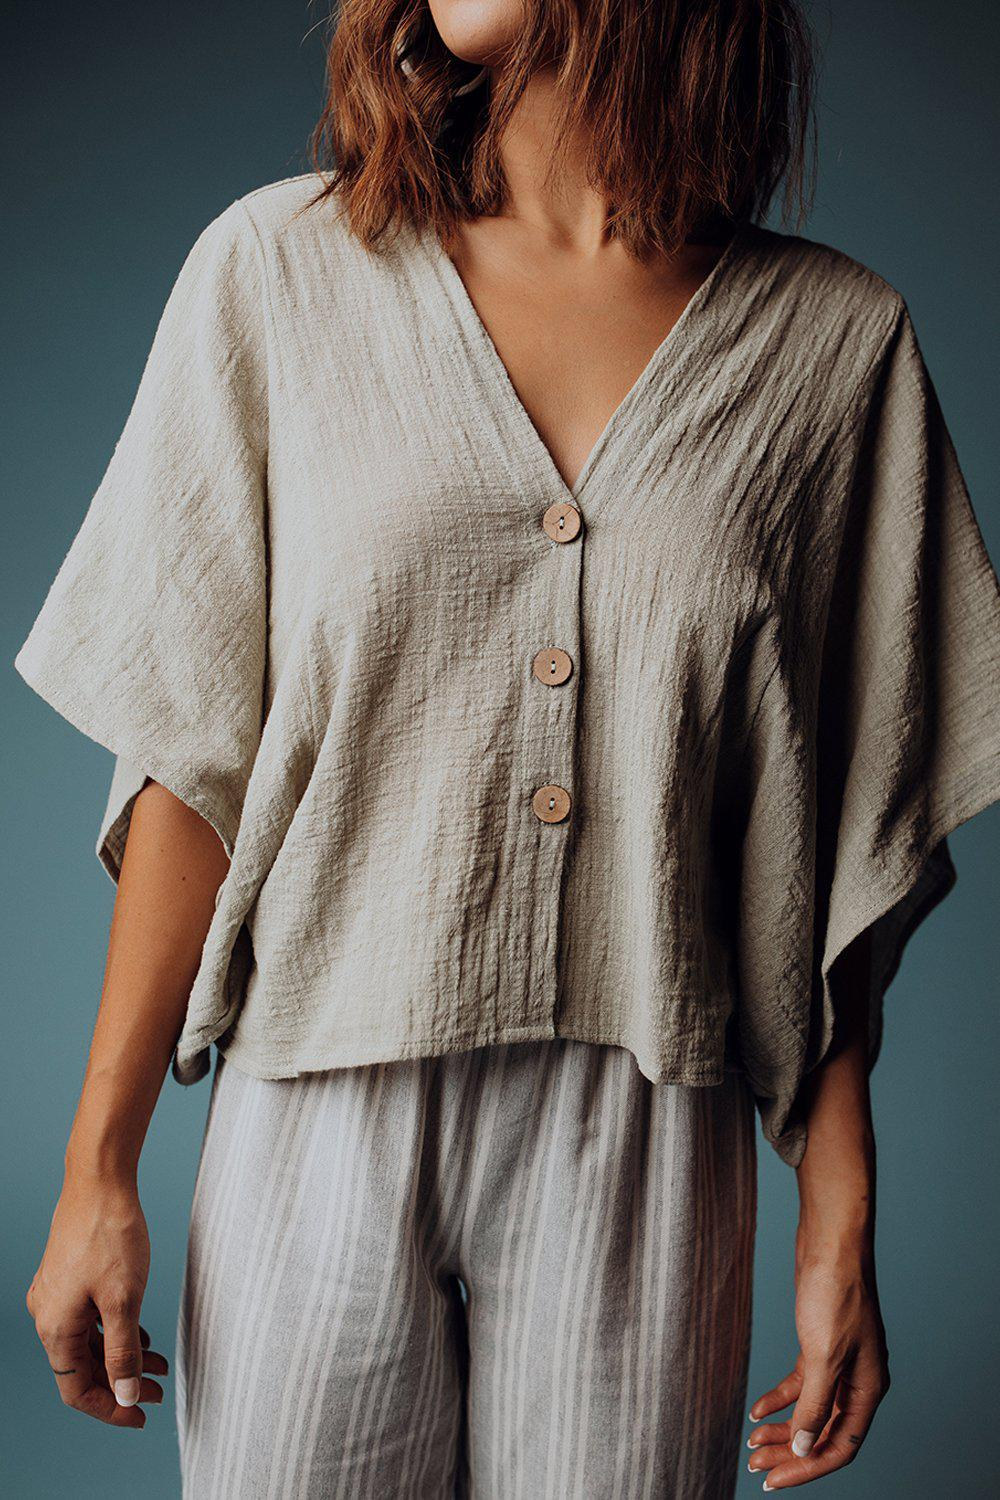 best_seller, Dylan Slouchy Top in Sage, Top, women's clothing, dresses, skirts, coats, jackets, shoes, boots, tops, tee shirts, jeans, free people, levi's, rollas, jumpsuits, bottoms, tops, sweaters, pullovers, pants, shorts, sweats,.